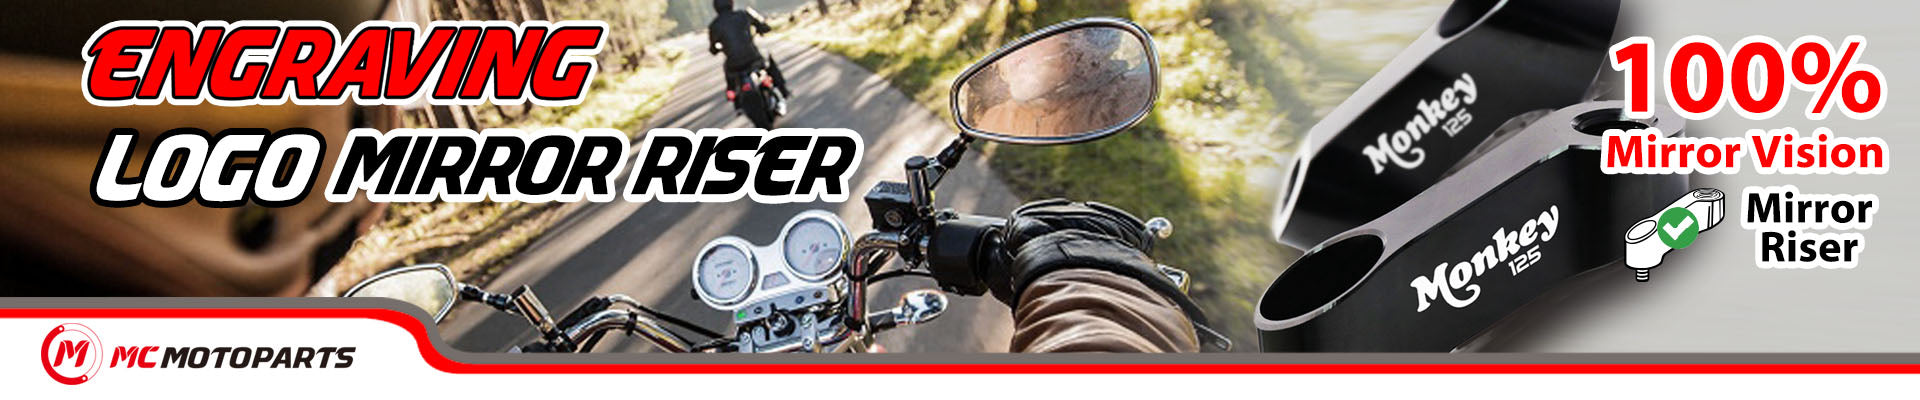 Motorcycle Mirror Extender banner